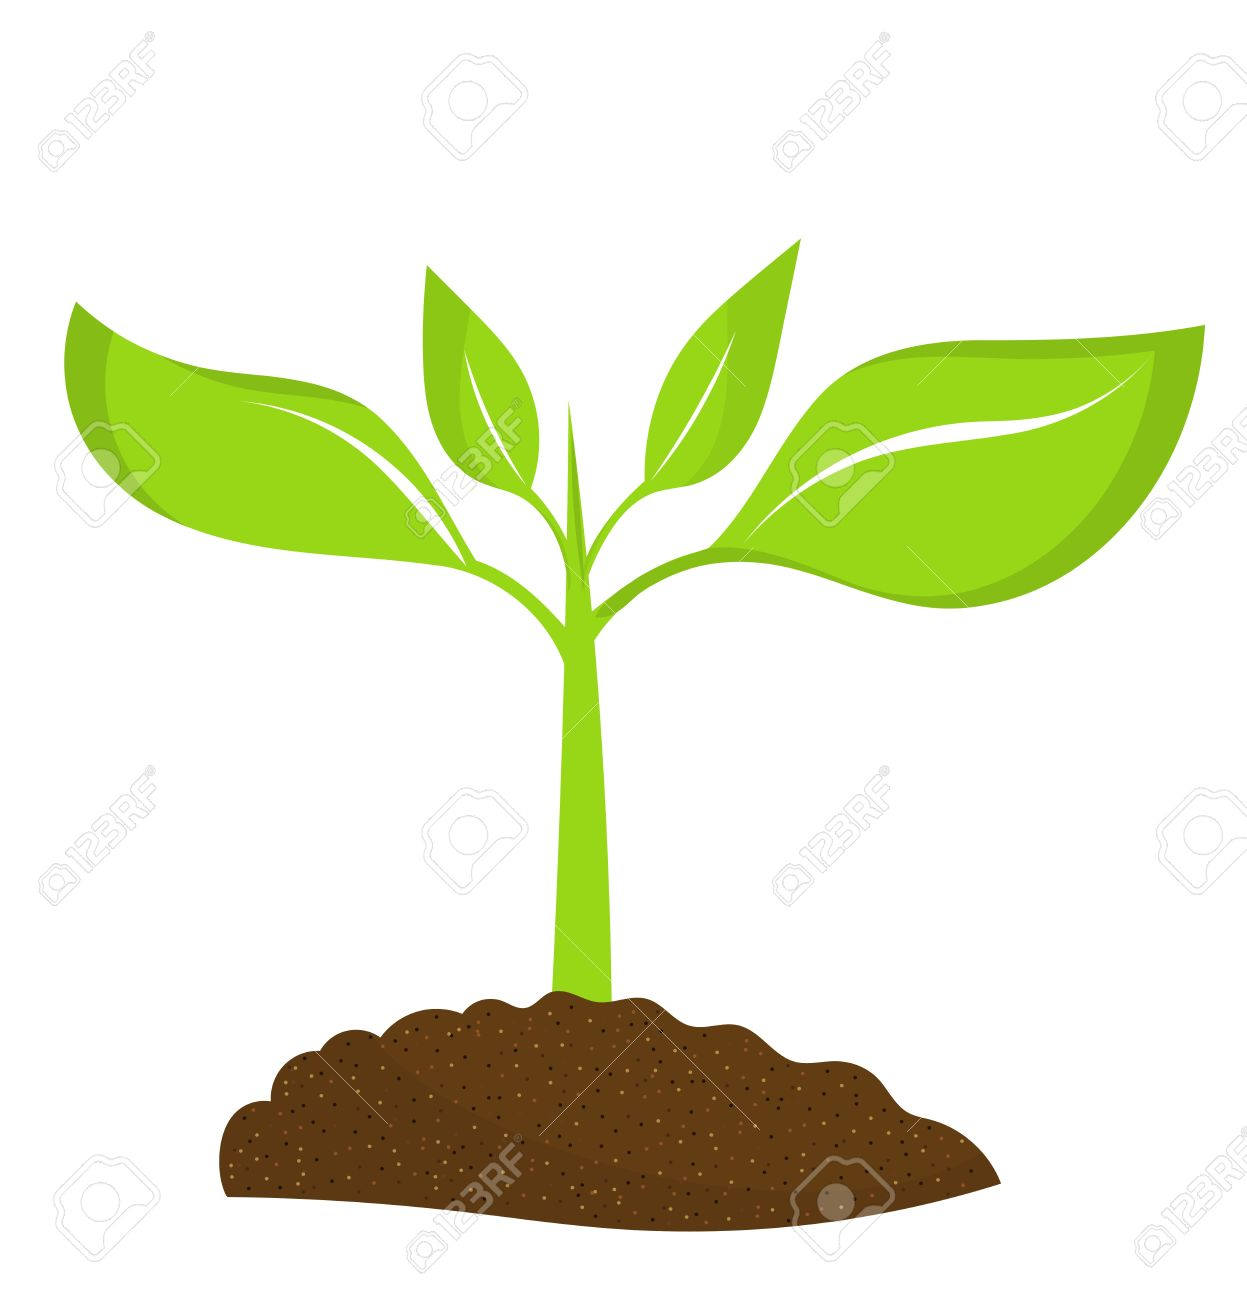 Seedling clipart land plant. Free download best on